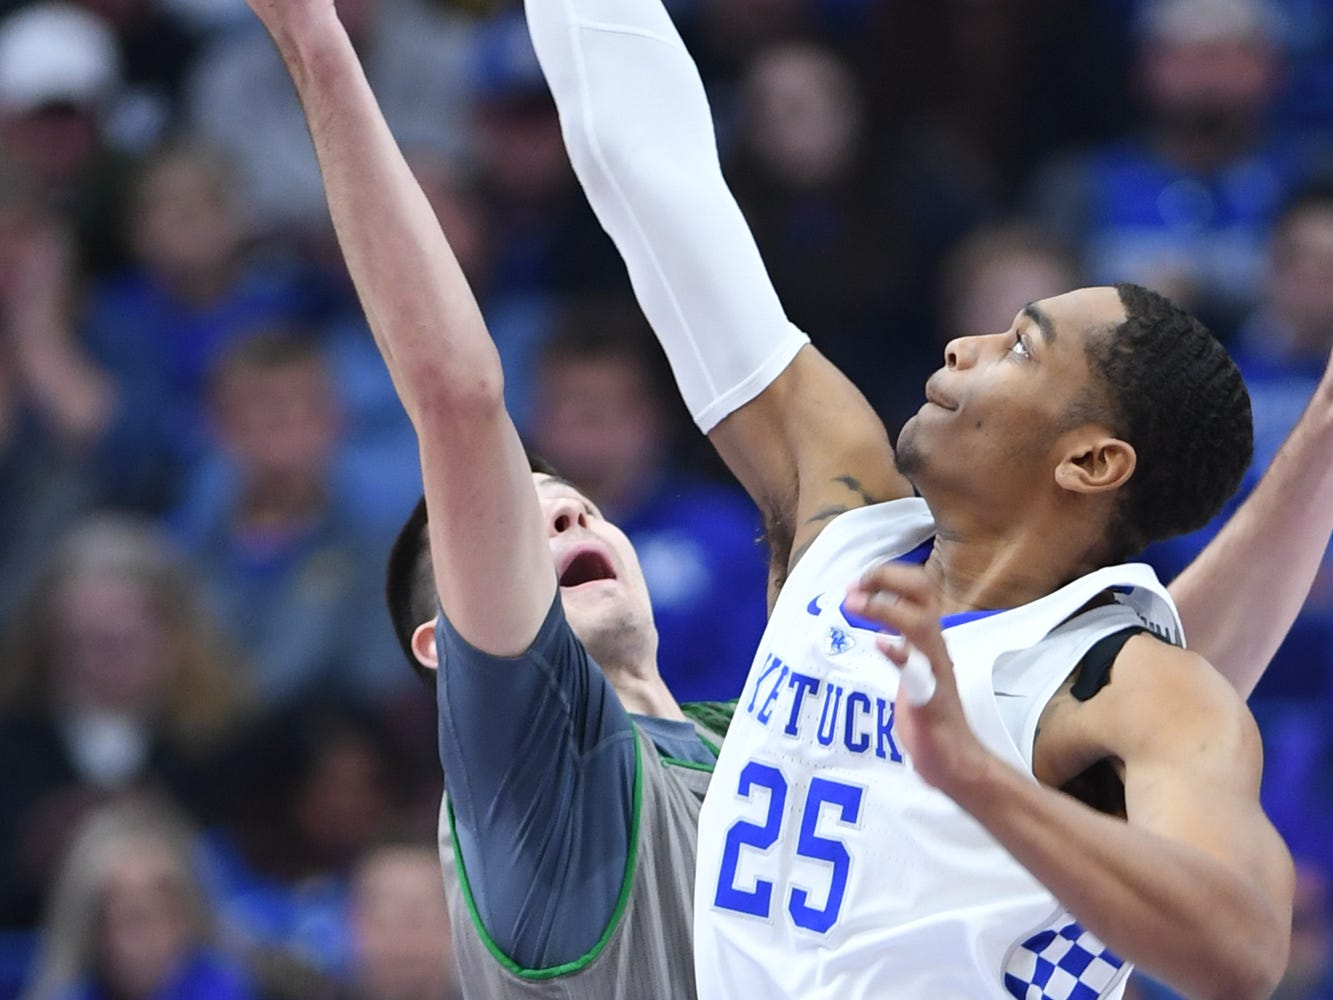 UK F PJ Washington wins the tip off during the University of Kentucky mens basketball game against North Dakota at Rupp Arena in Lexington, Kentucky on Wednesday, November 14, 2018.